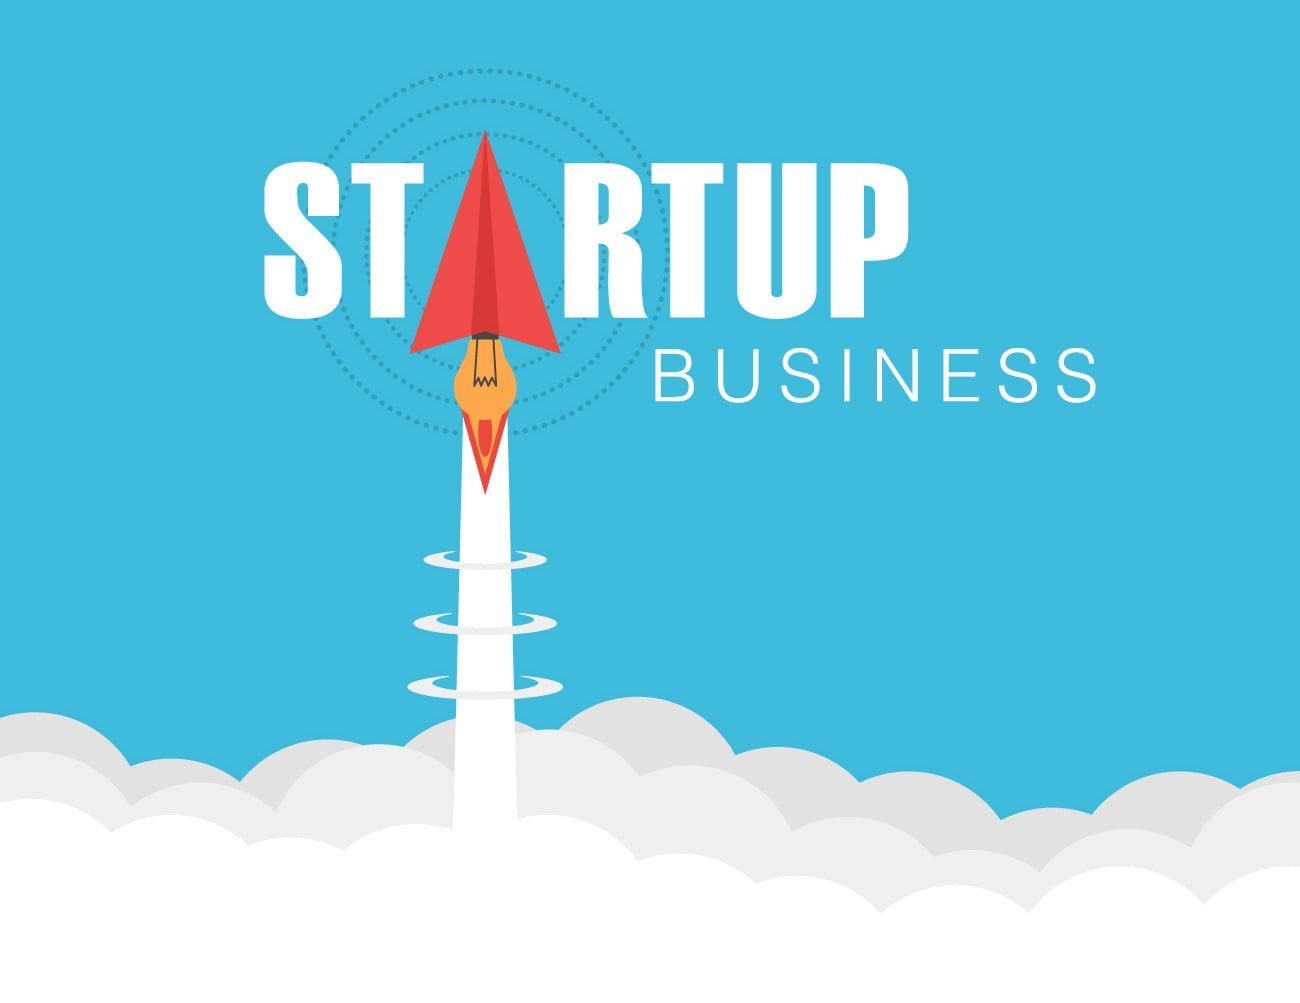 Entrepreneurs to succeed in their start-up business should take of some important functions